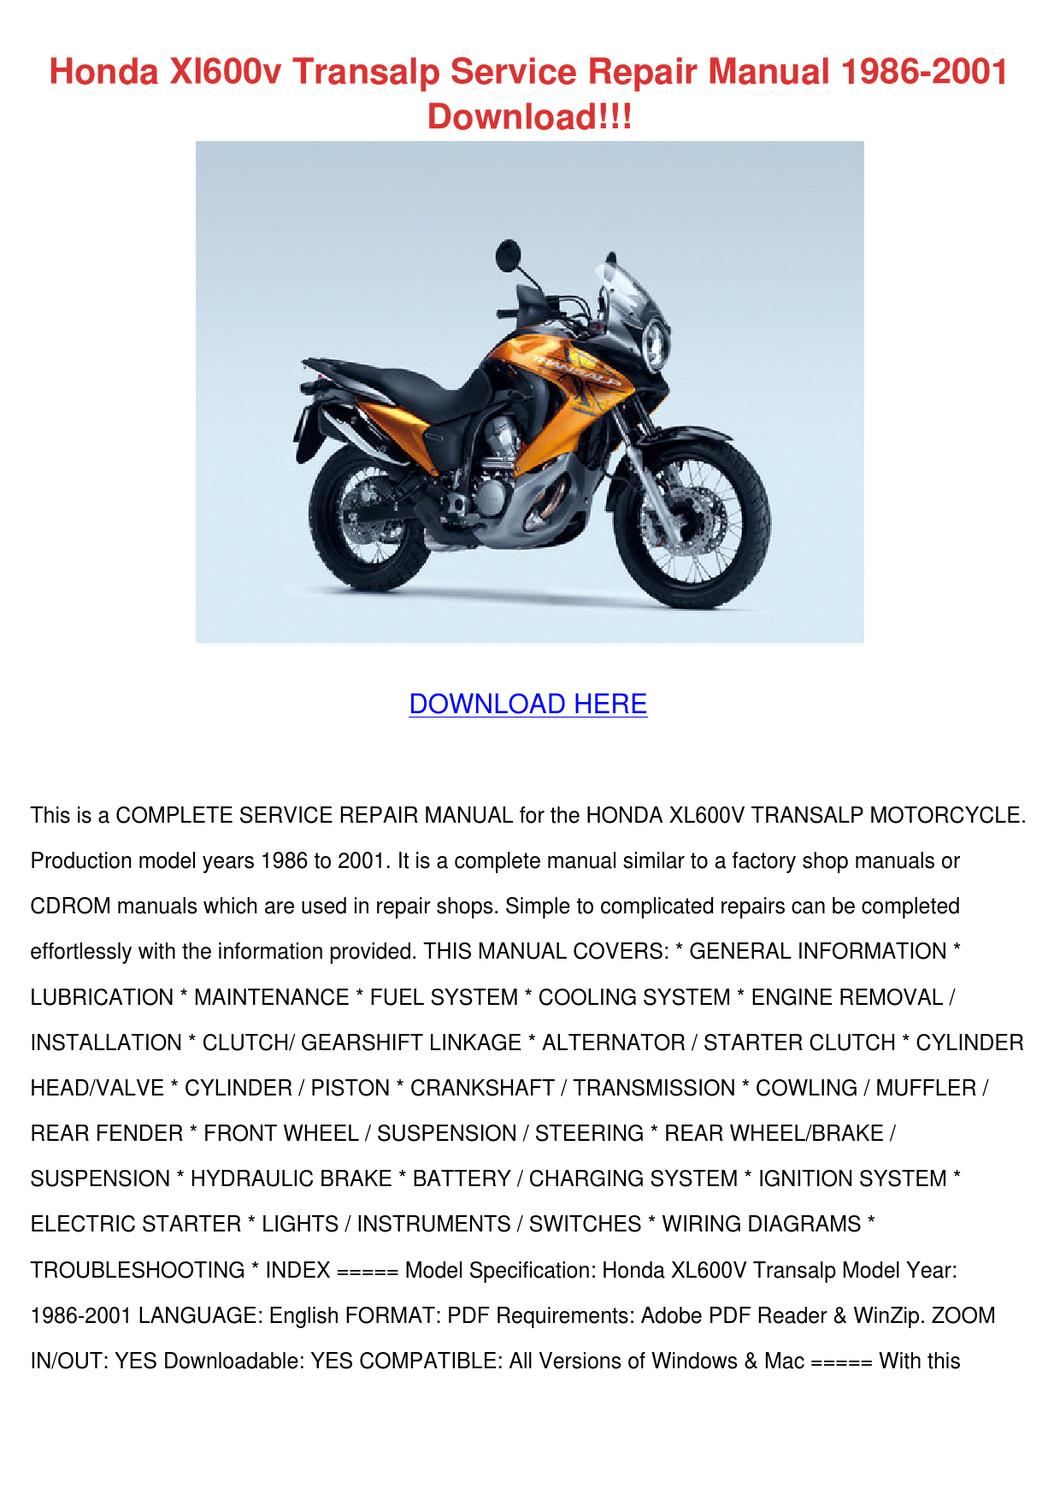 Honda Xl600v Transalp Service Repair Manual 1 By Shameka Dice Issuu Xl500r Wiring Diagram